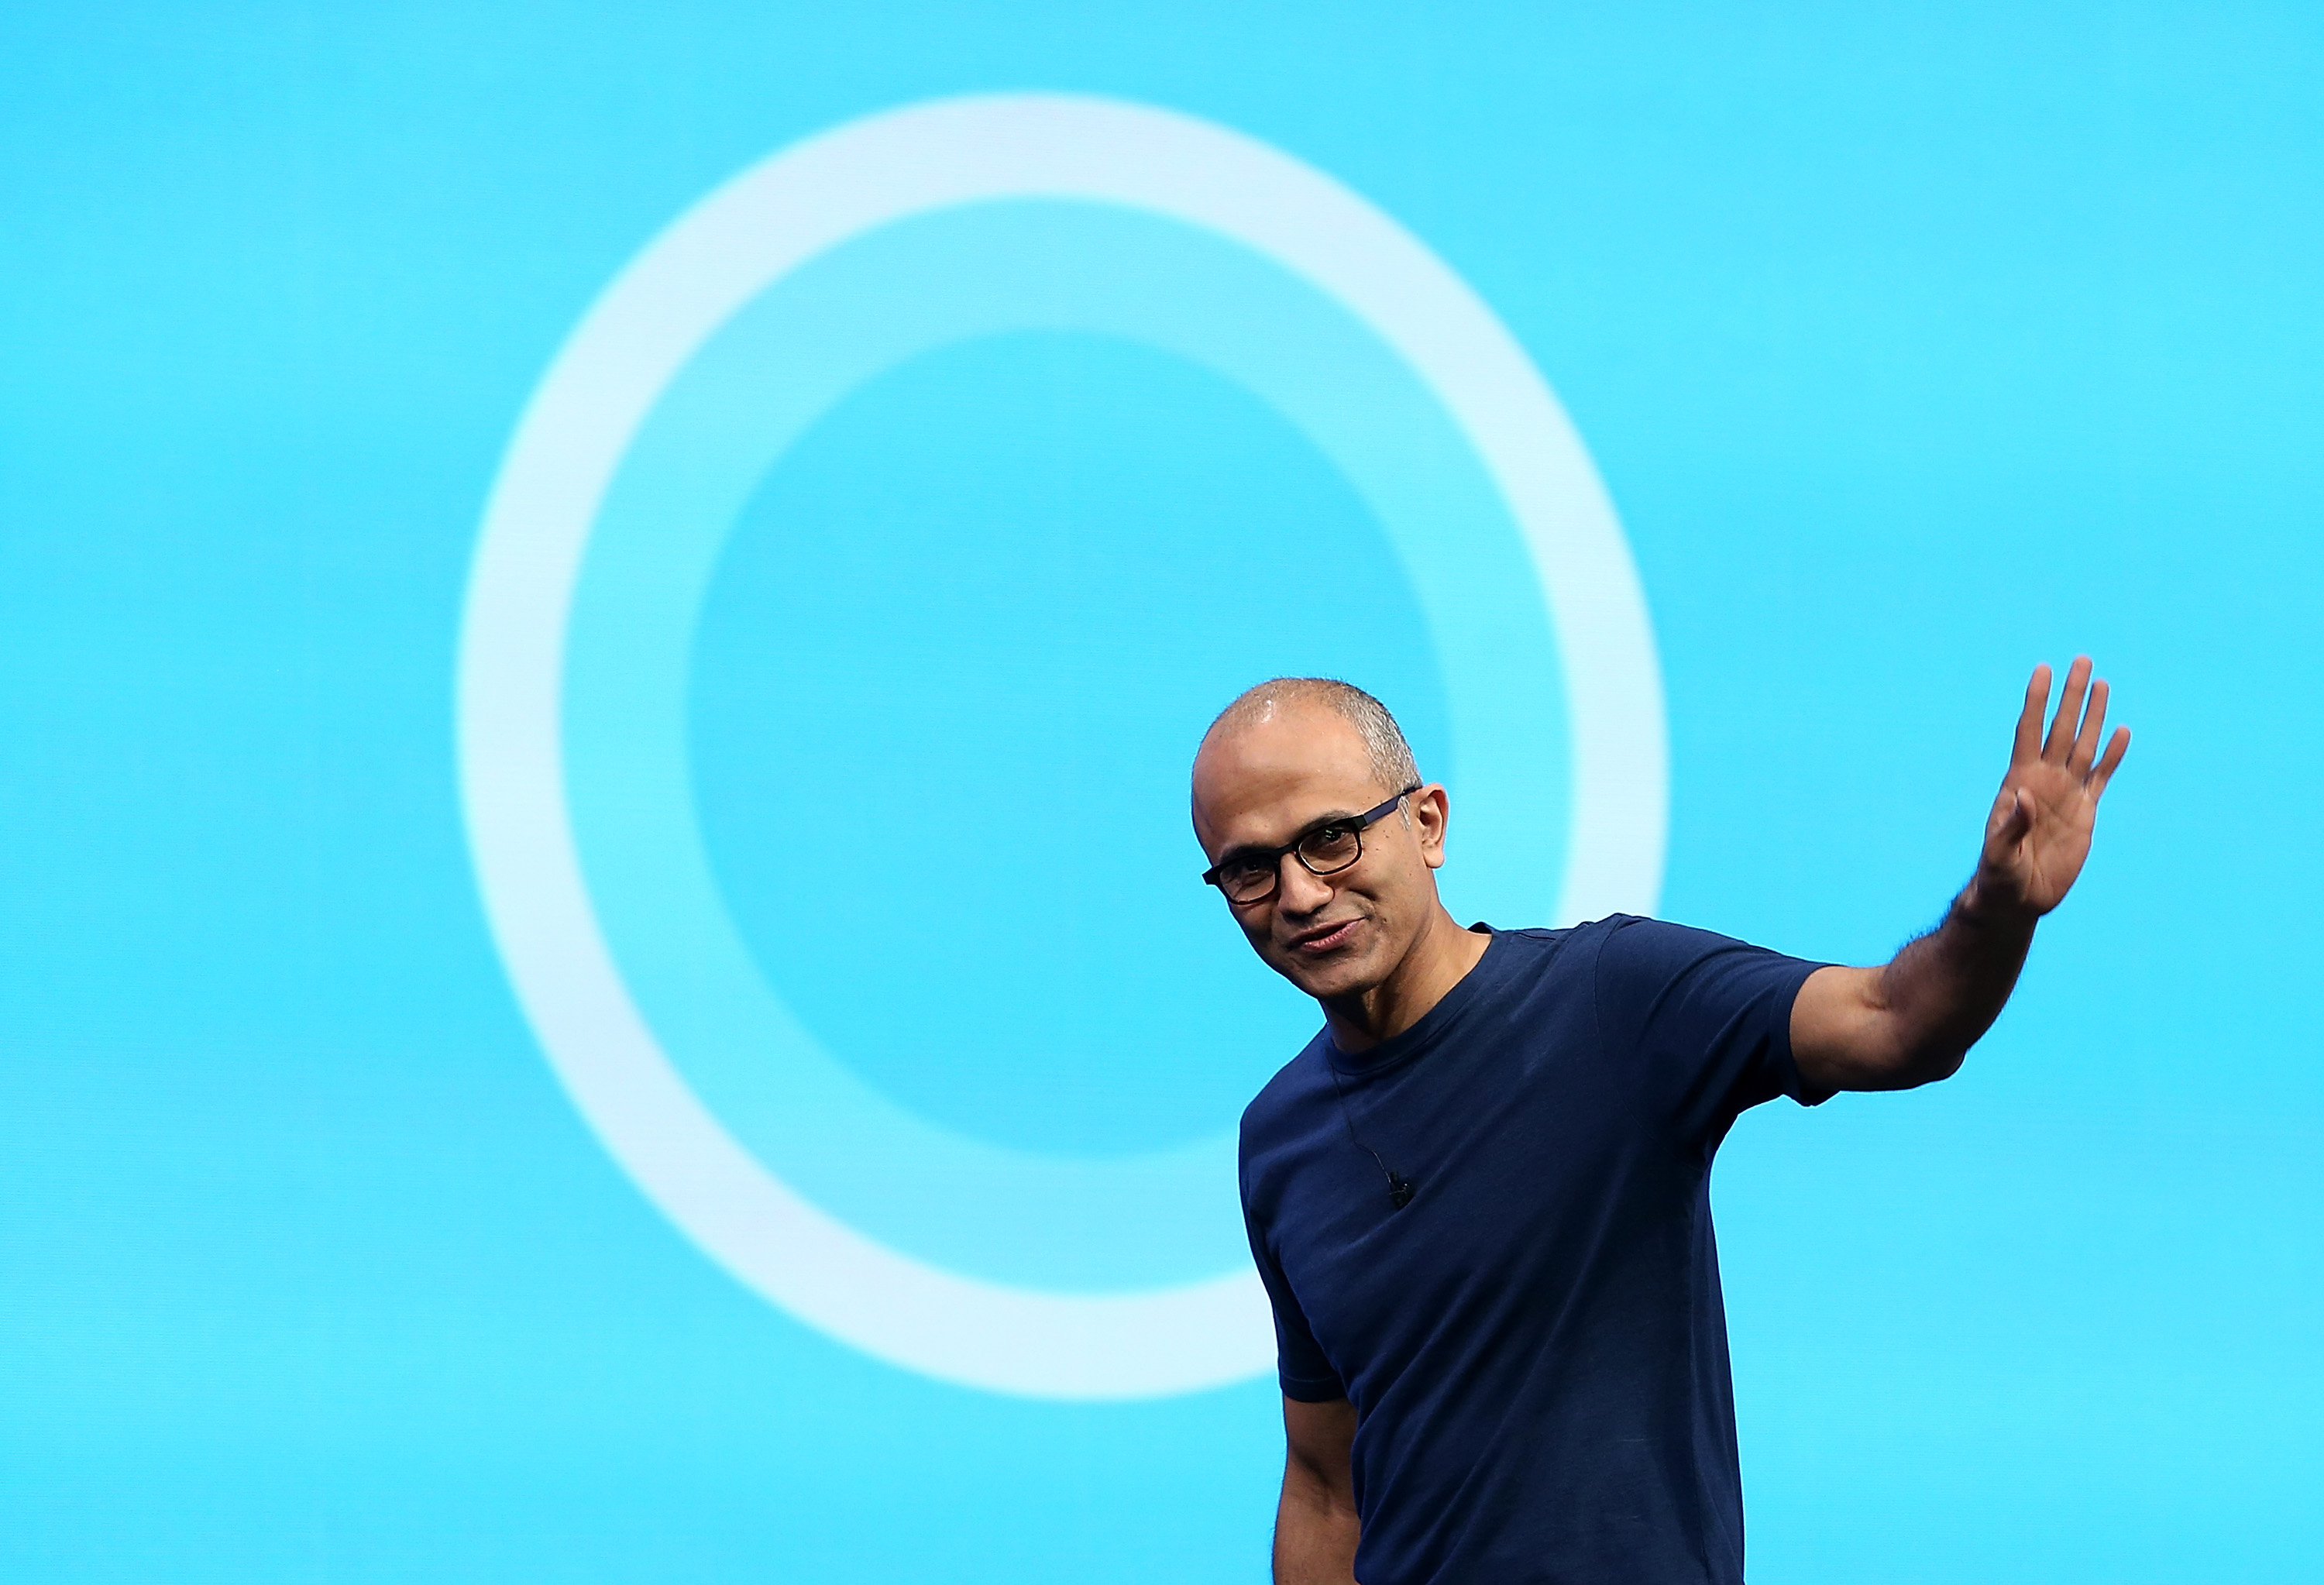 Microsoft CEO Satya Nadella walks in front of the new Cortana logo as he delivers a keynote address during the 2014 Microsoft Build developer conference on April 2, 2014 in San Francisco, California.